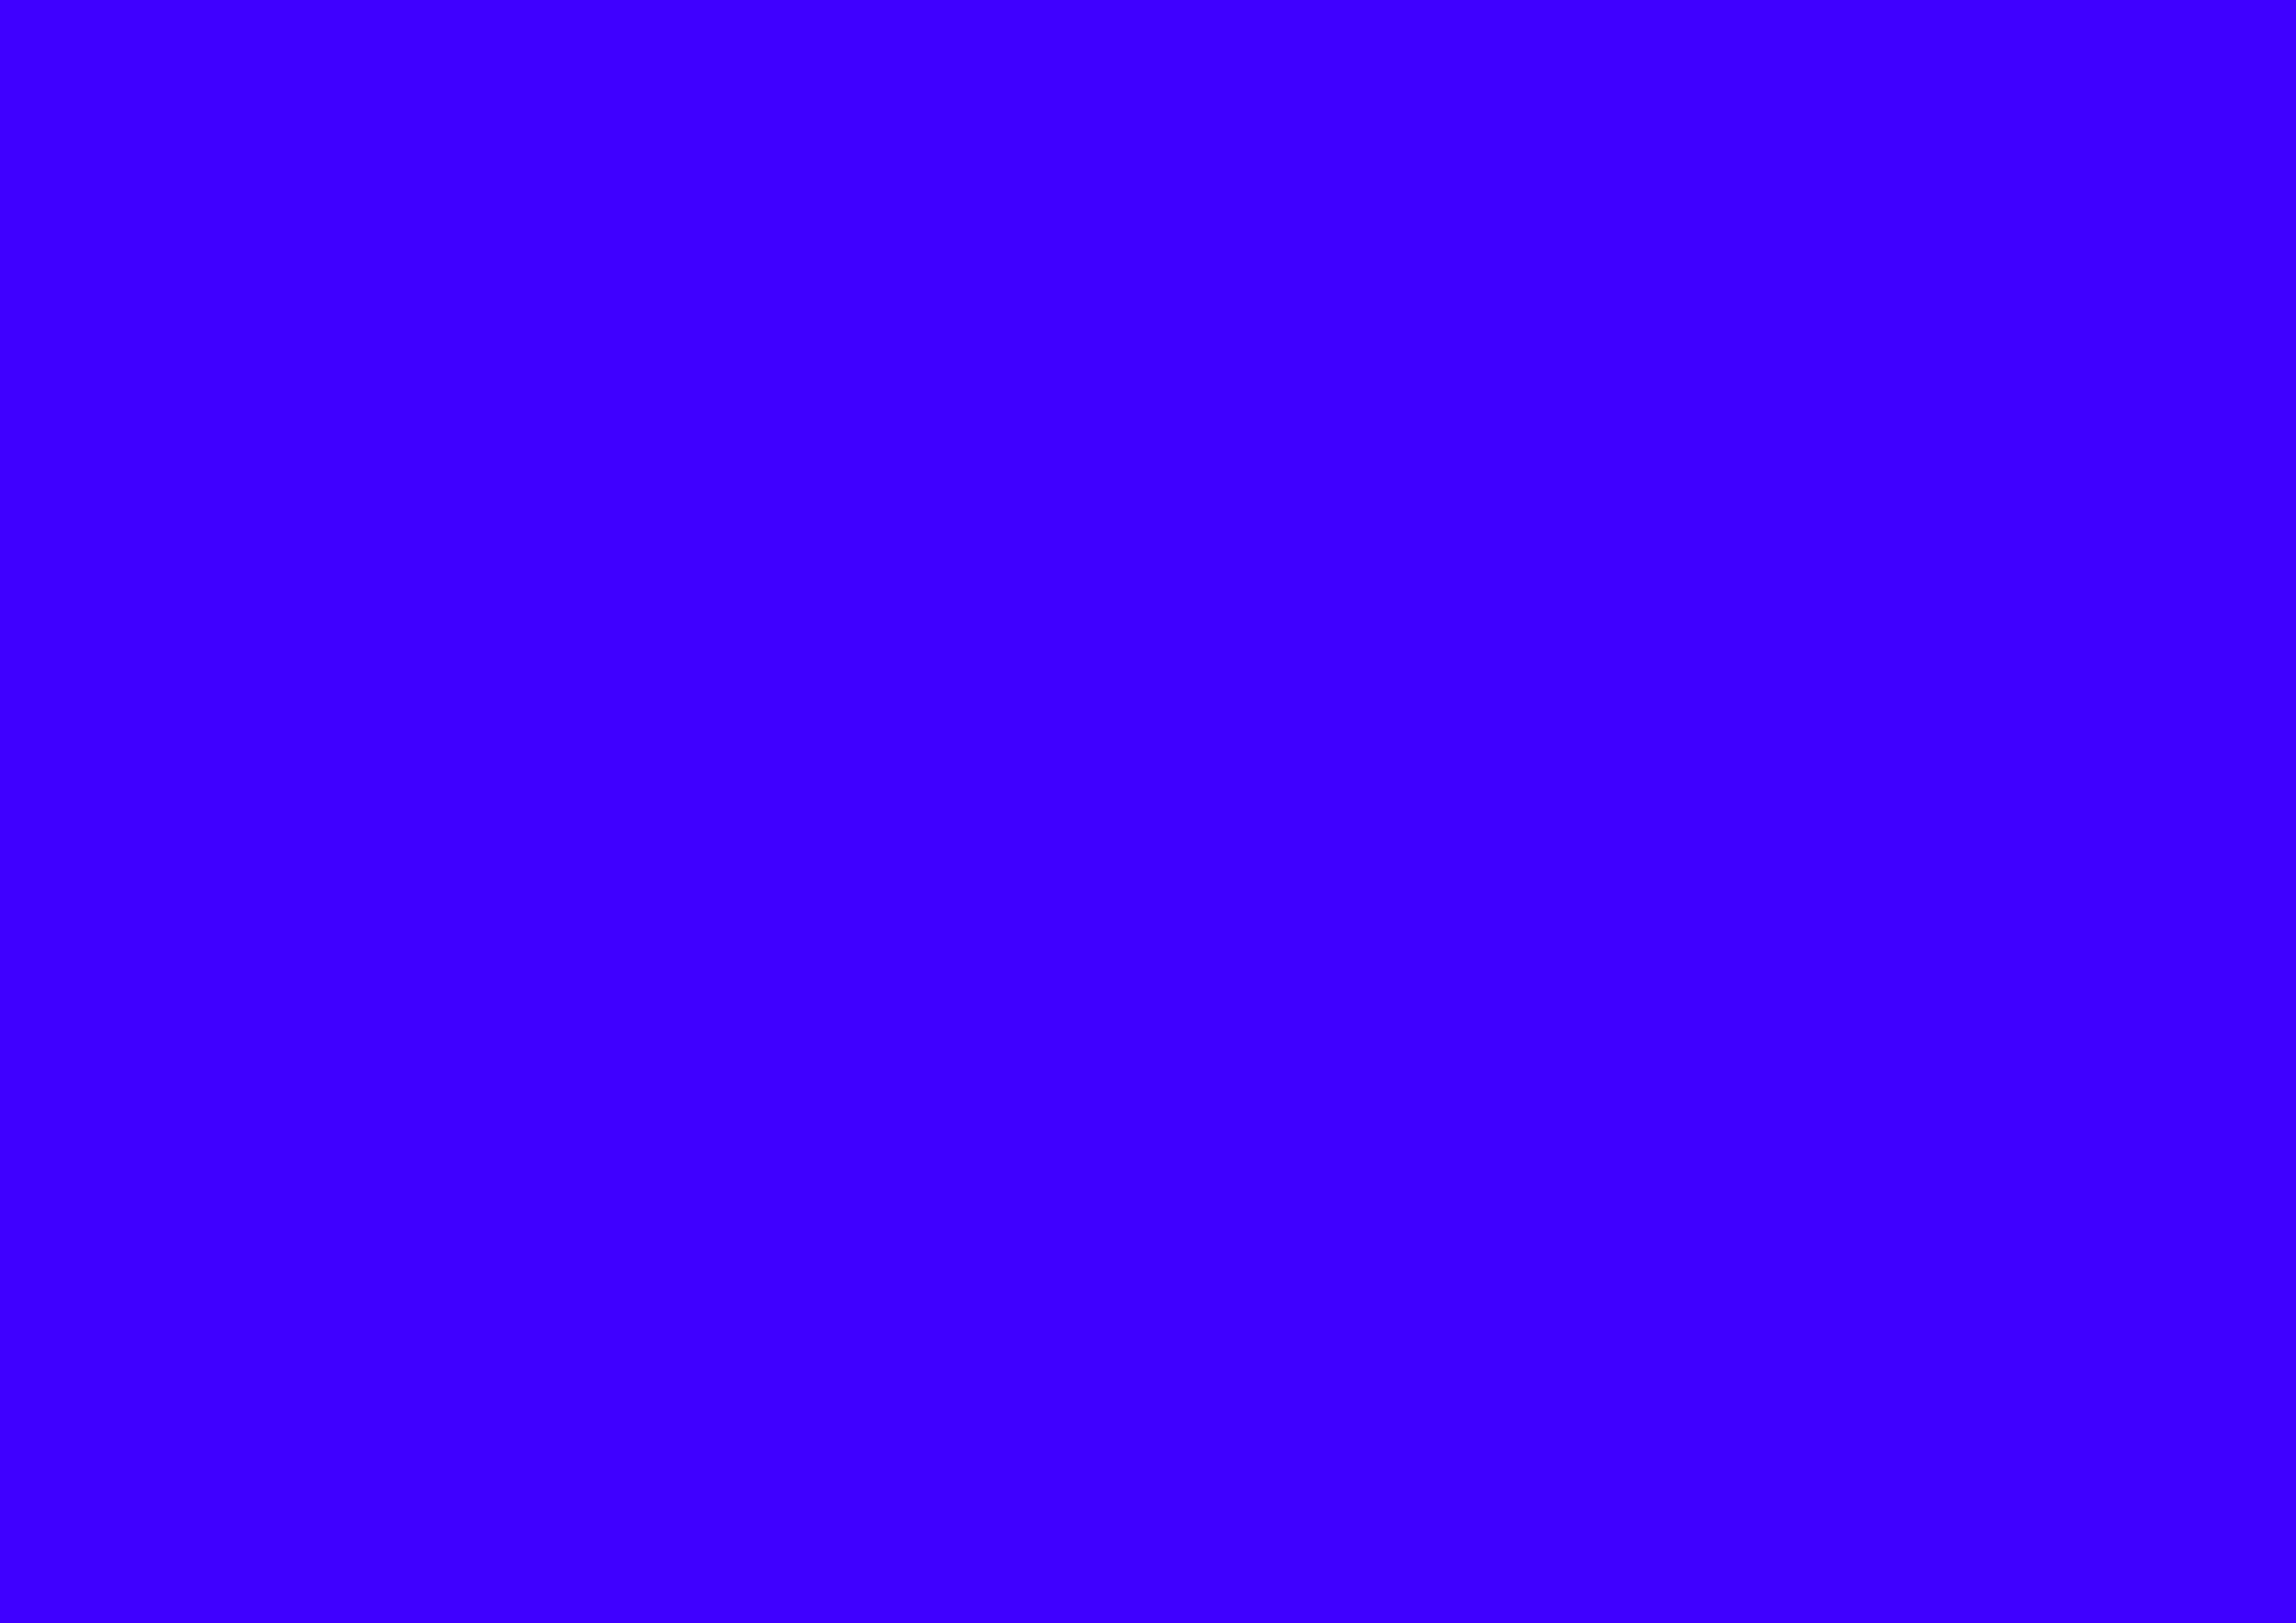 3508x2480 Electric Ultramarine Solid Color Background